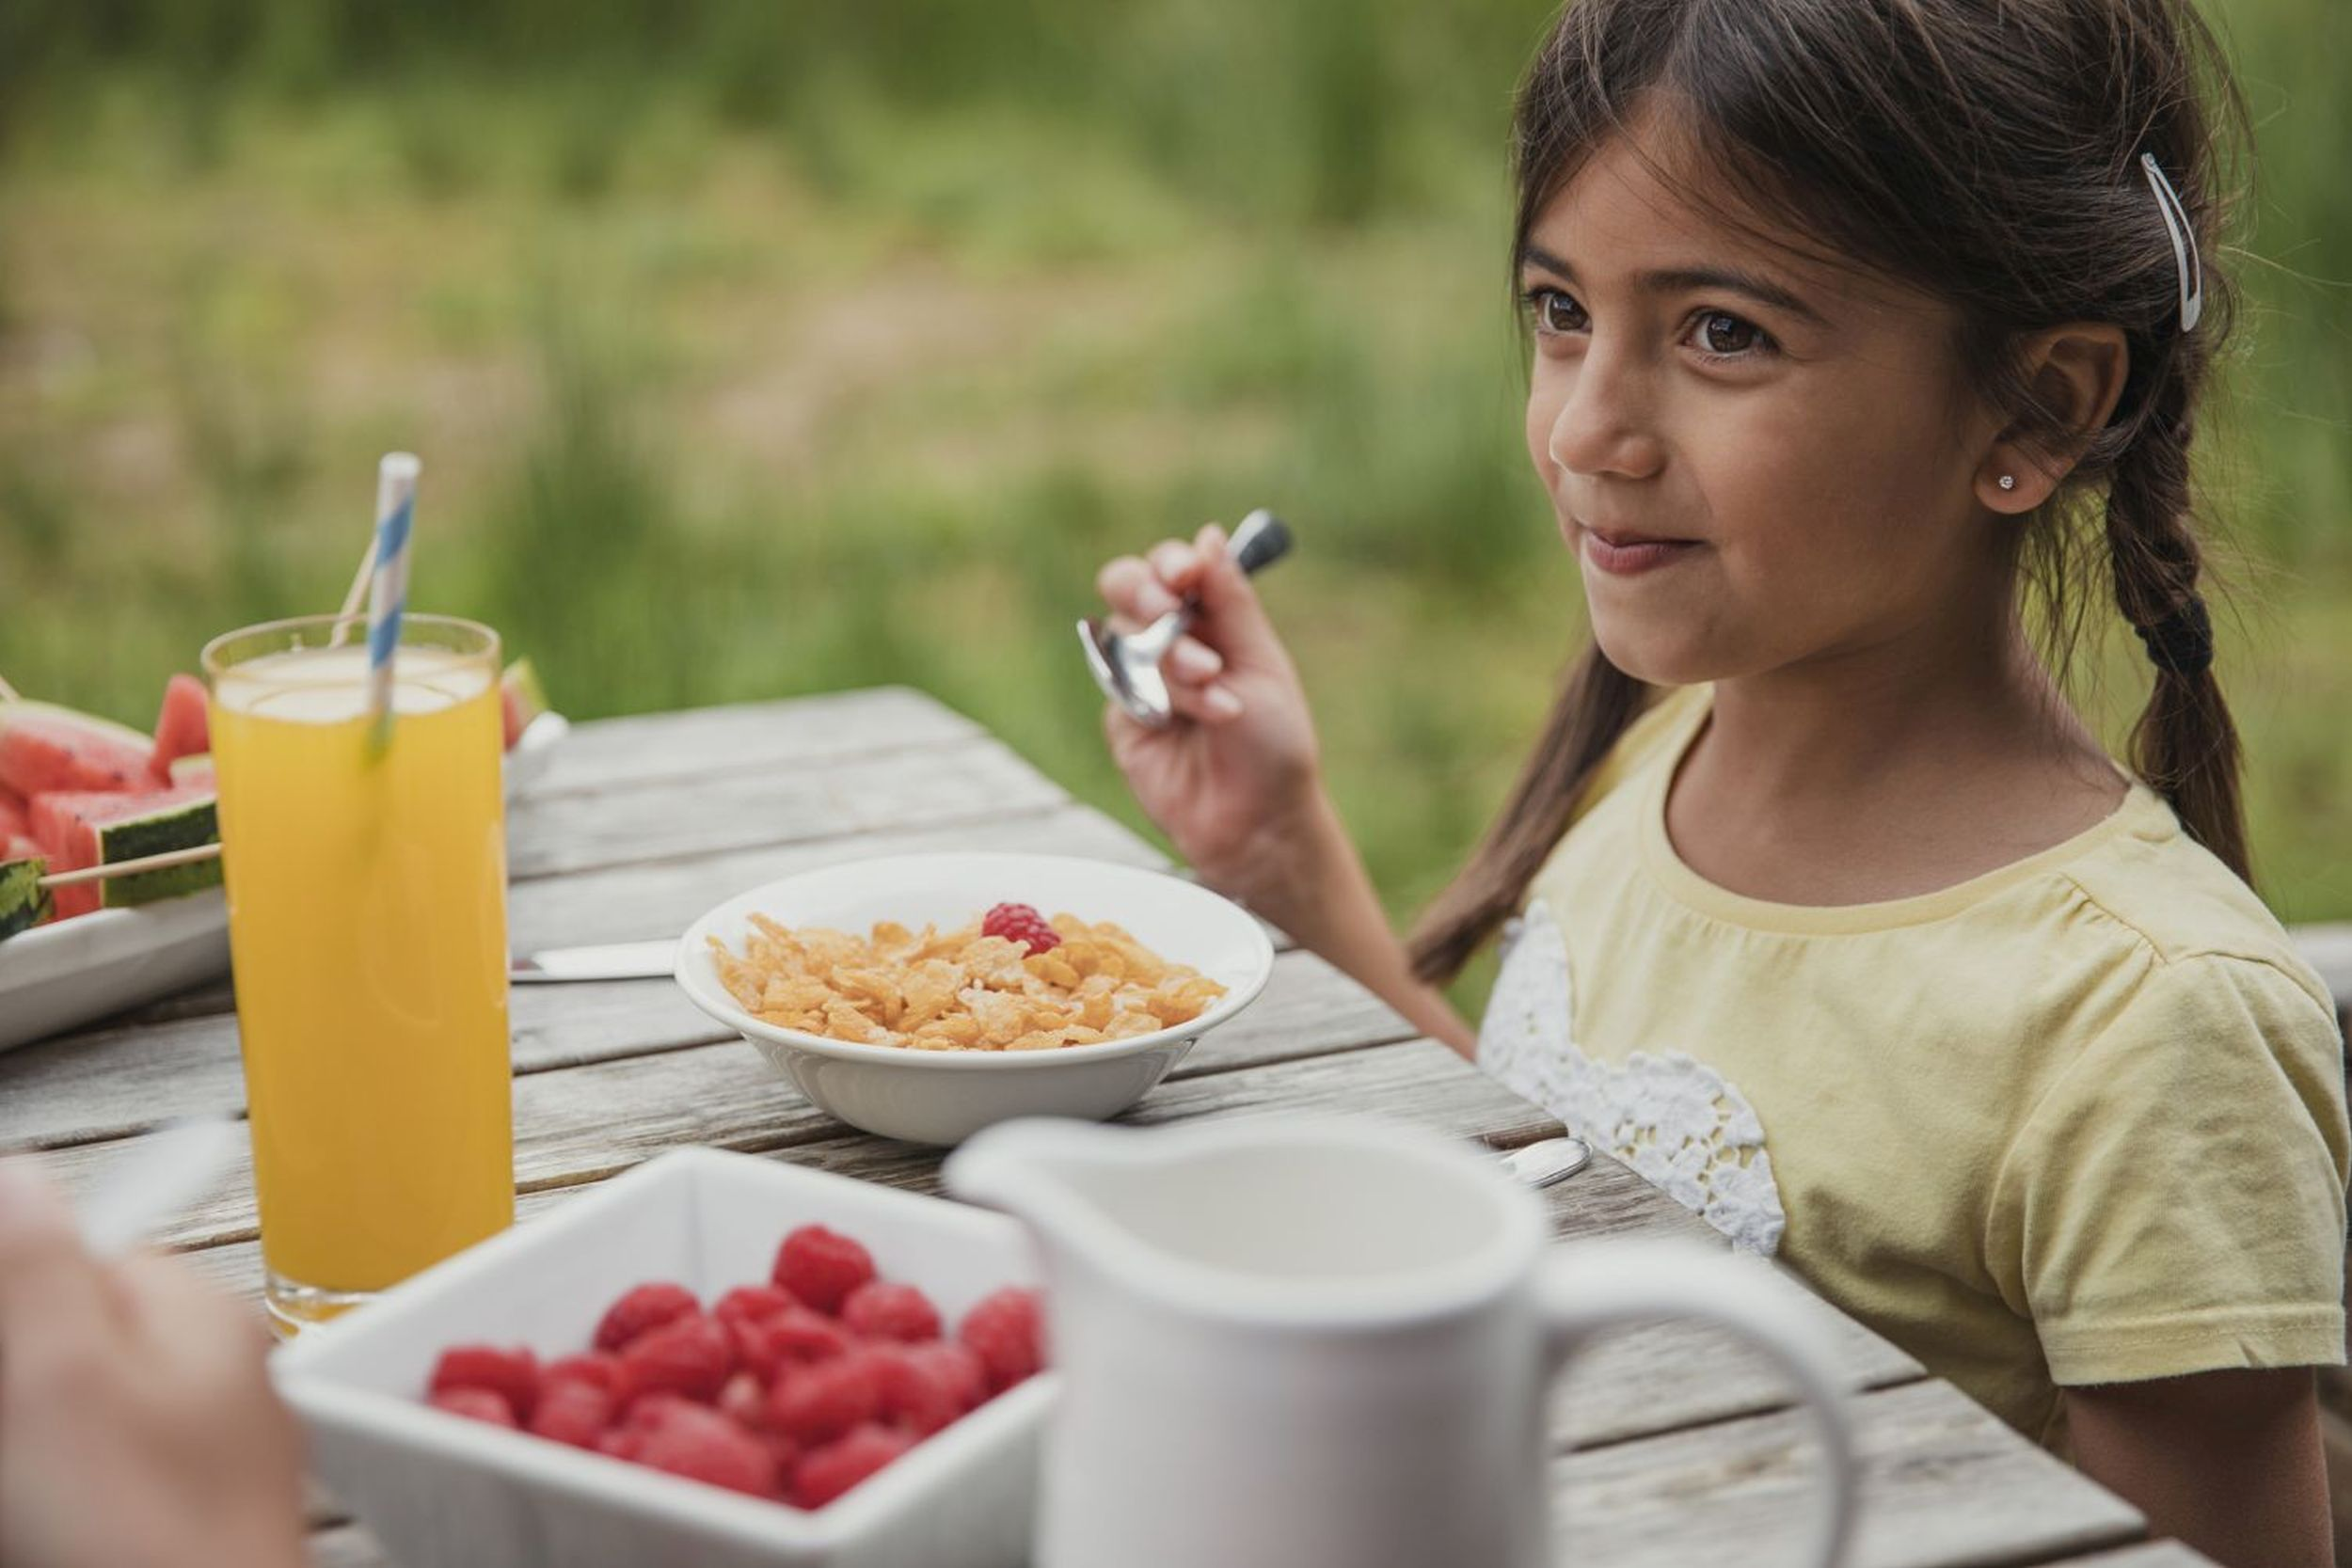 Little girl smiling as he eats her cereal outside (iStock/PA)